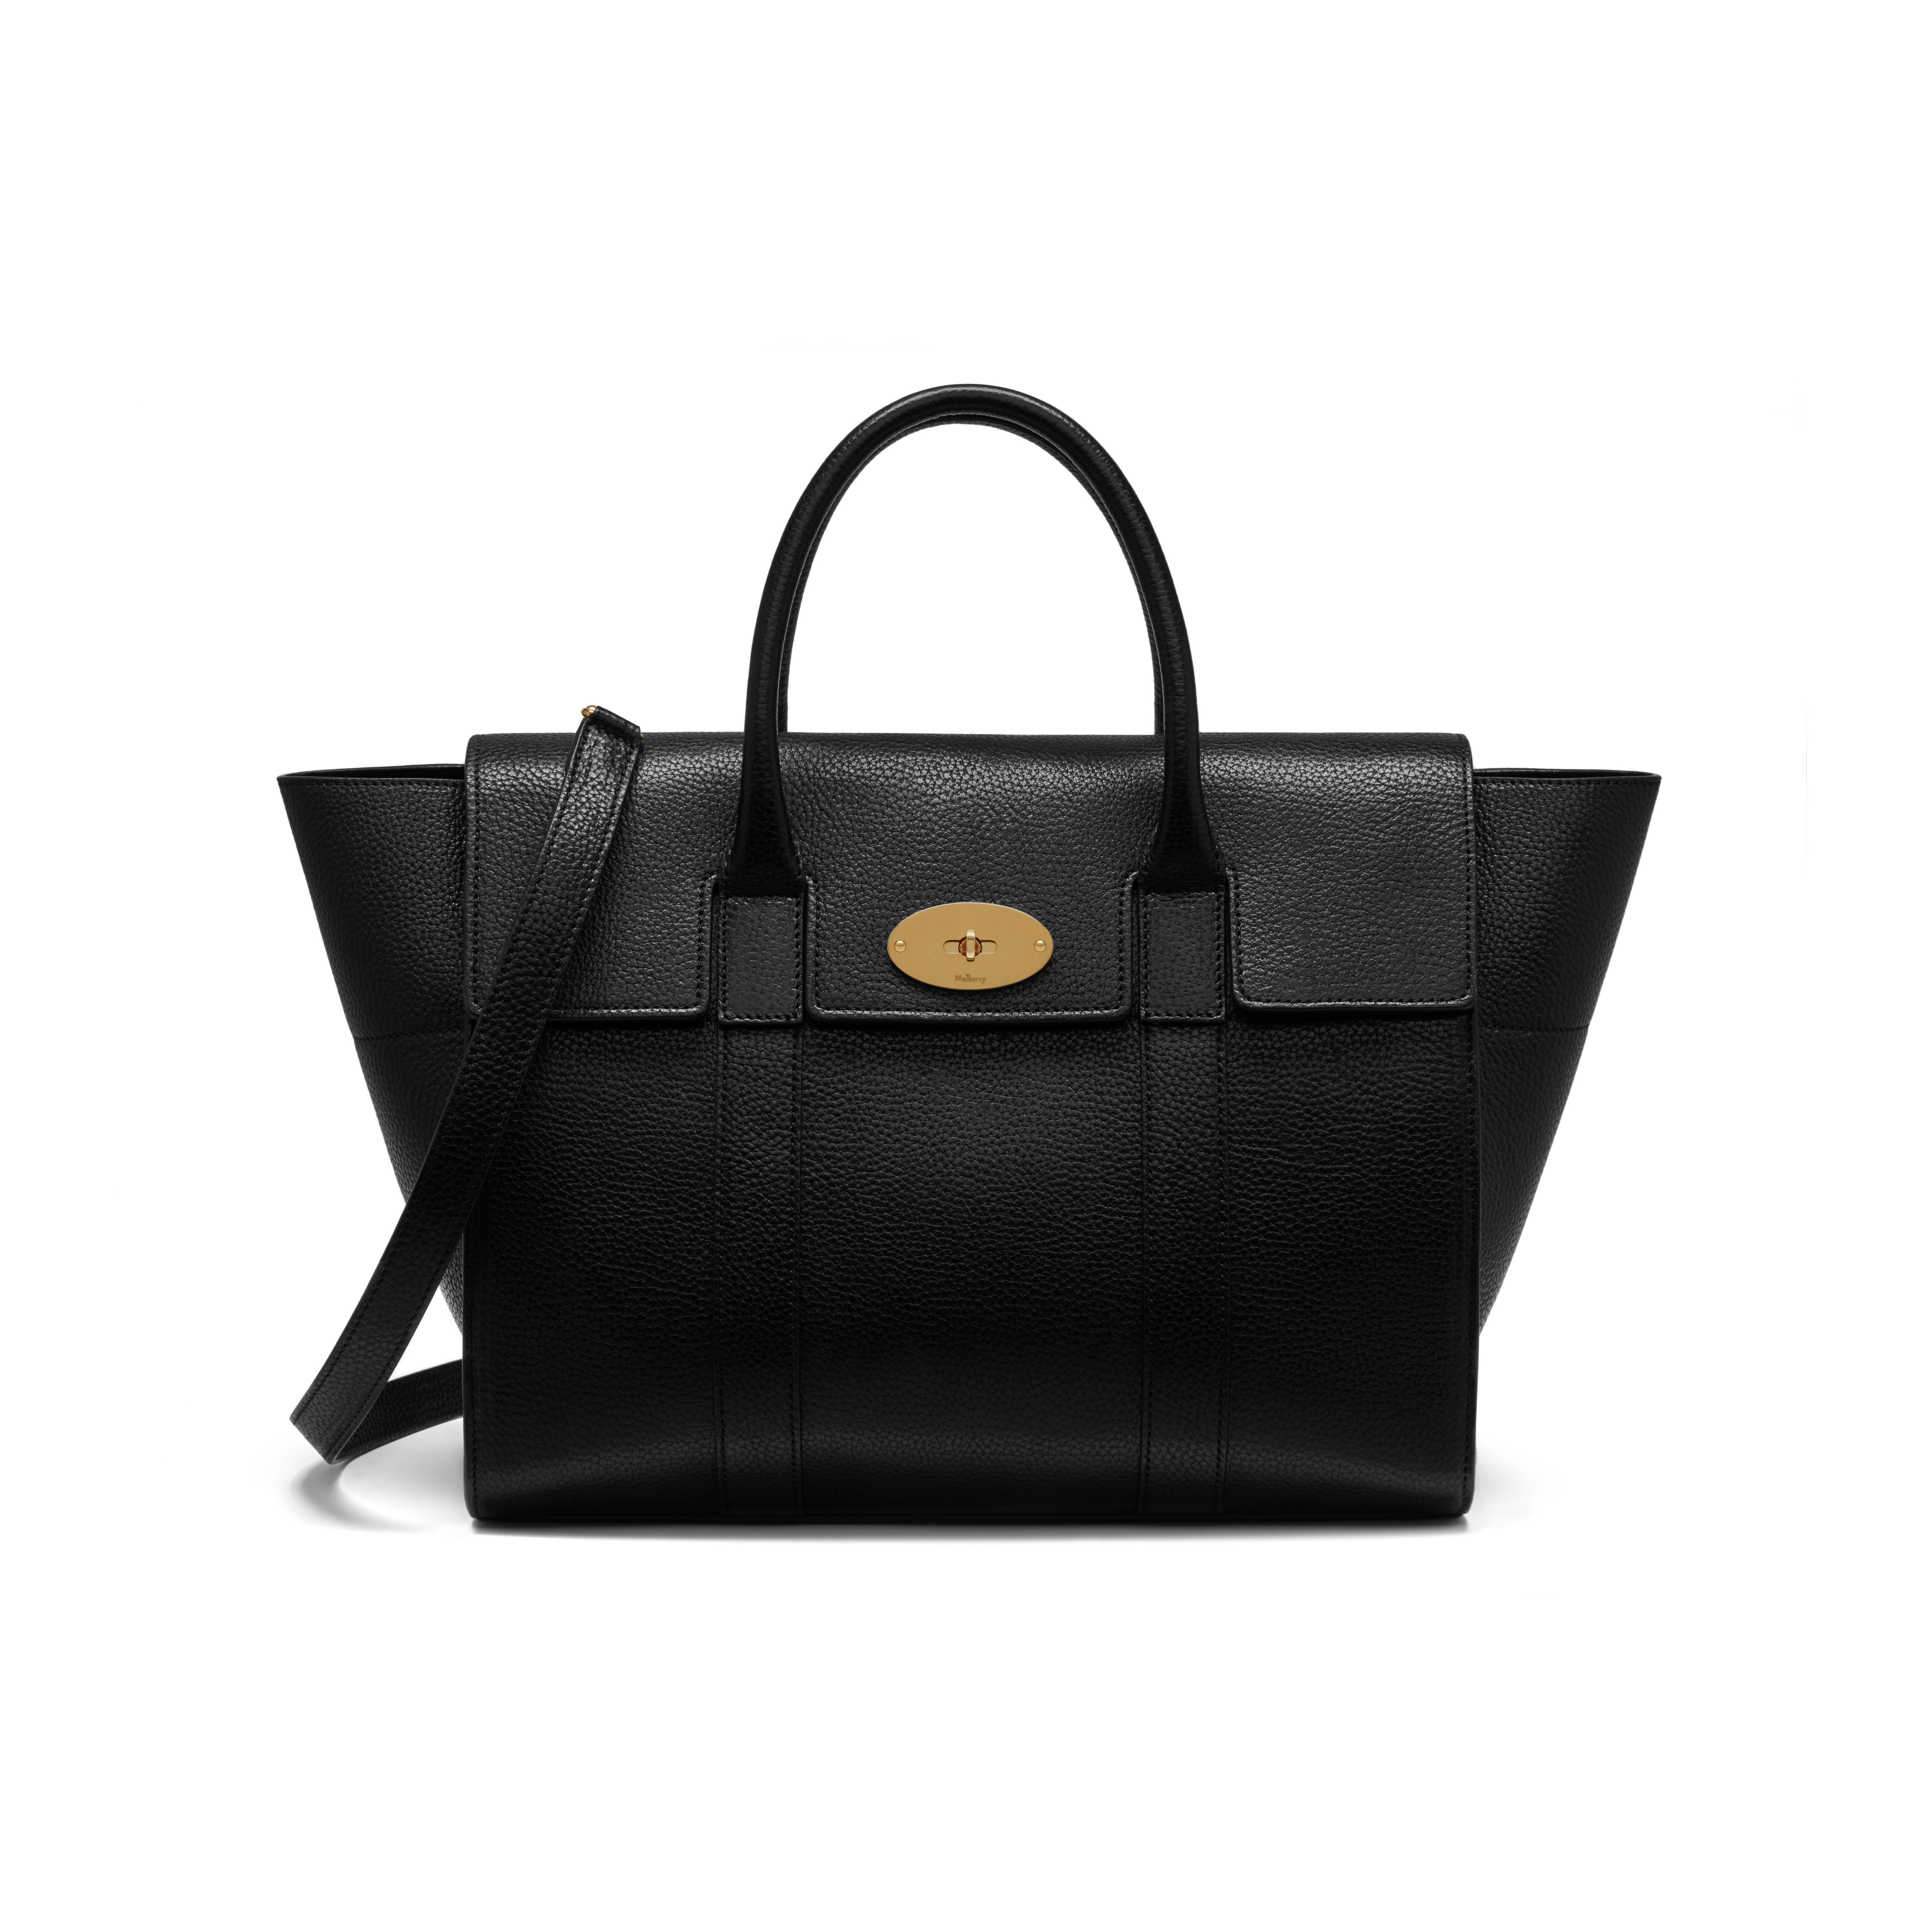 b621db6106a Bayswater with Strap in 2019 | Wearable | Mulberry bag, Bags ...